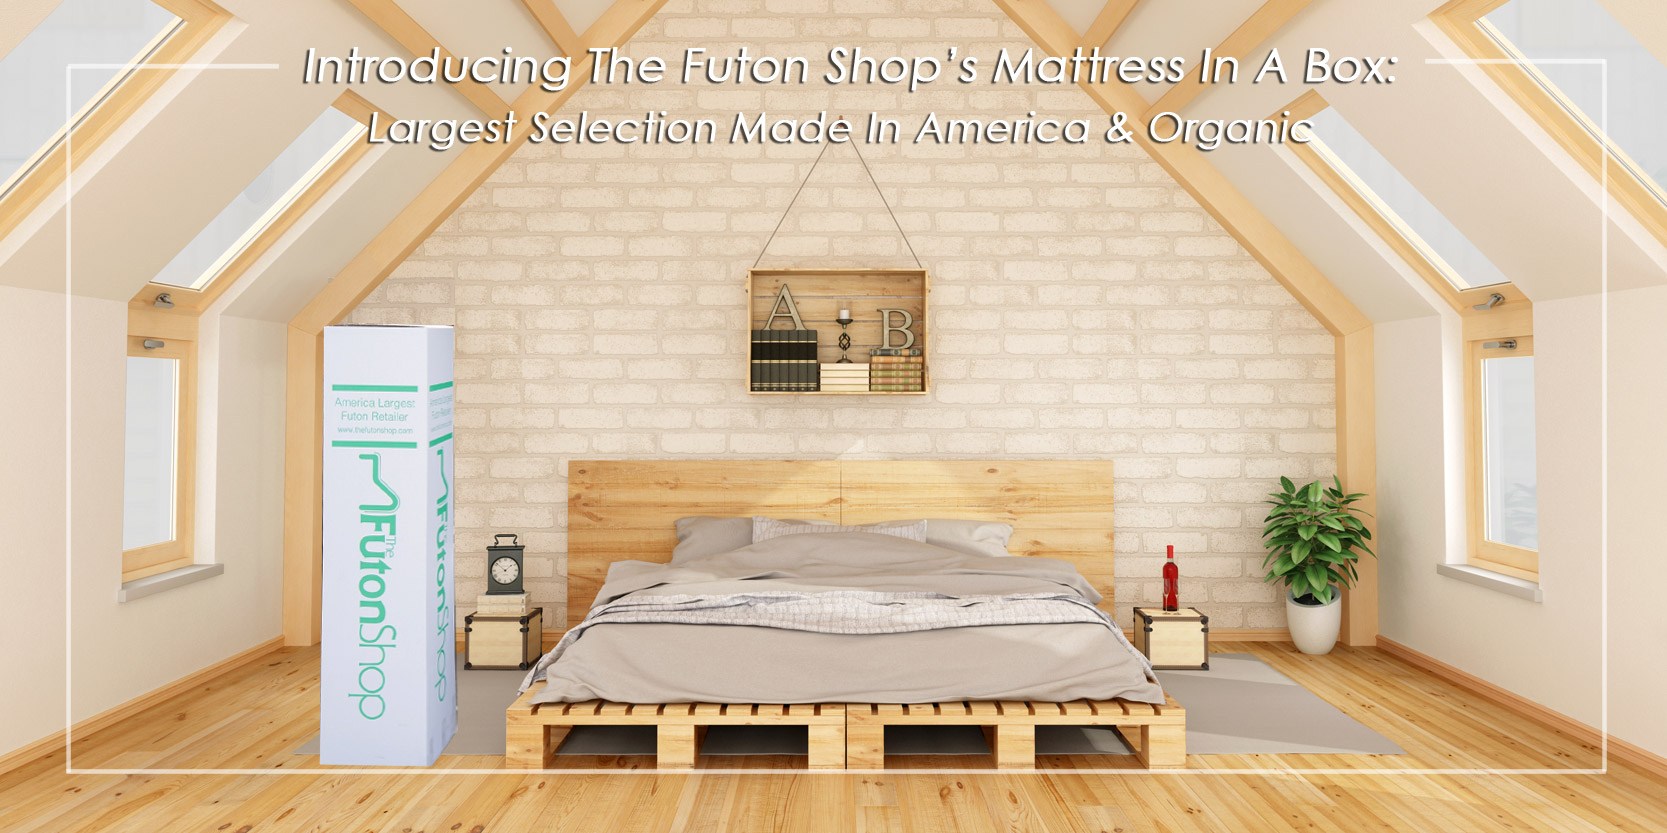 Tis The Season Of Giving This Thanksgiving: Introducing The Largest Natural Futon Mattress In A Box Selection